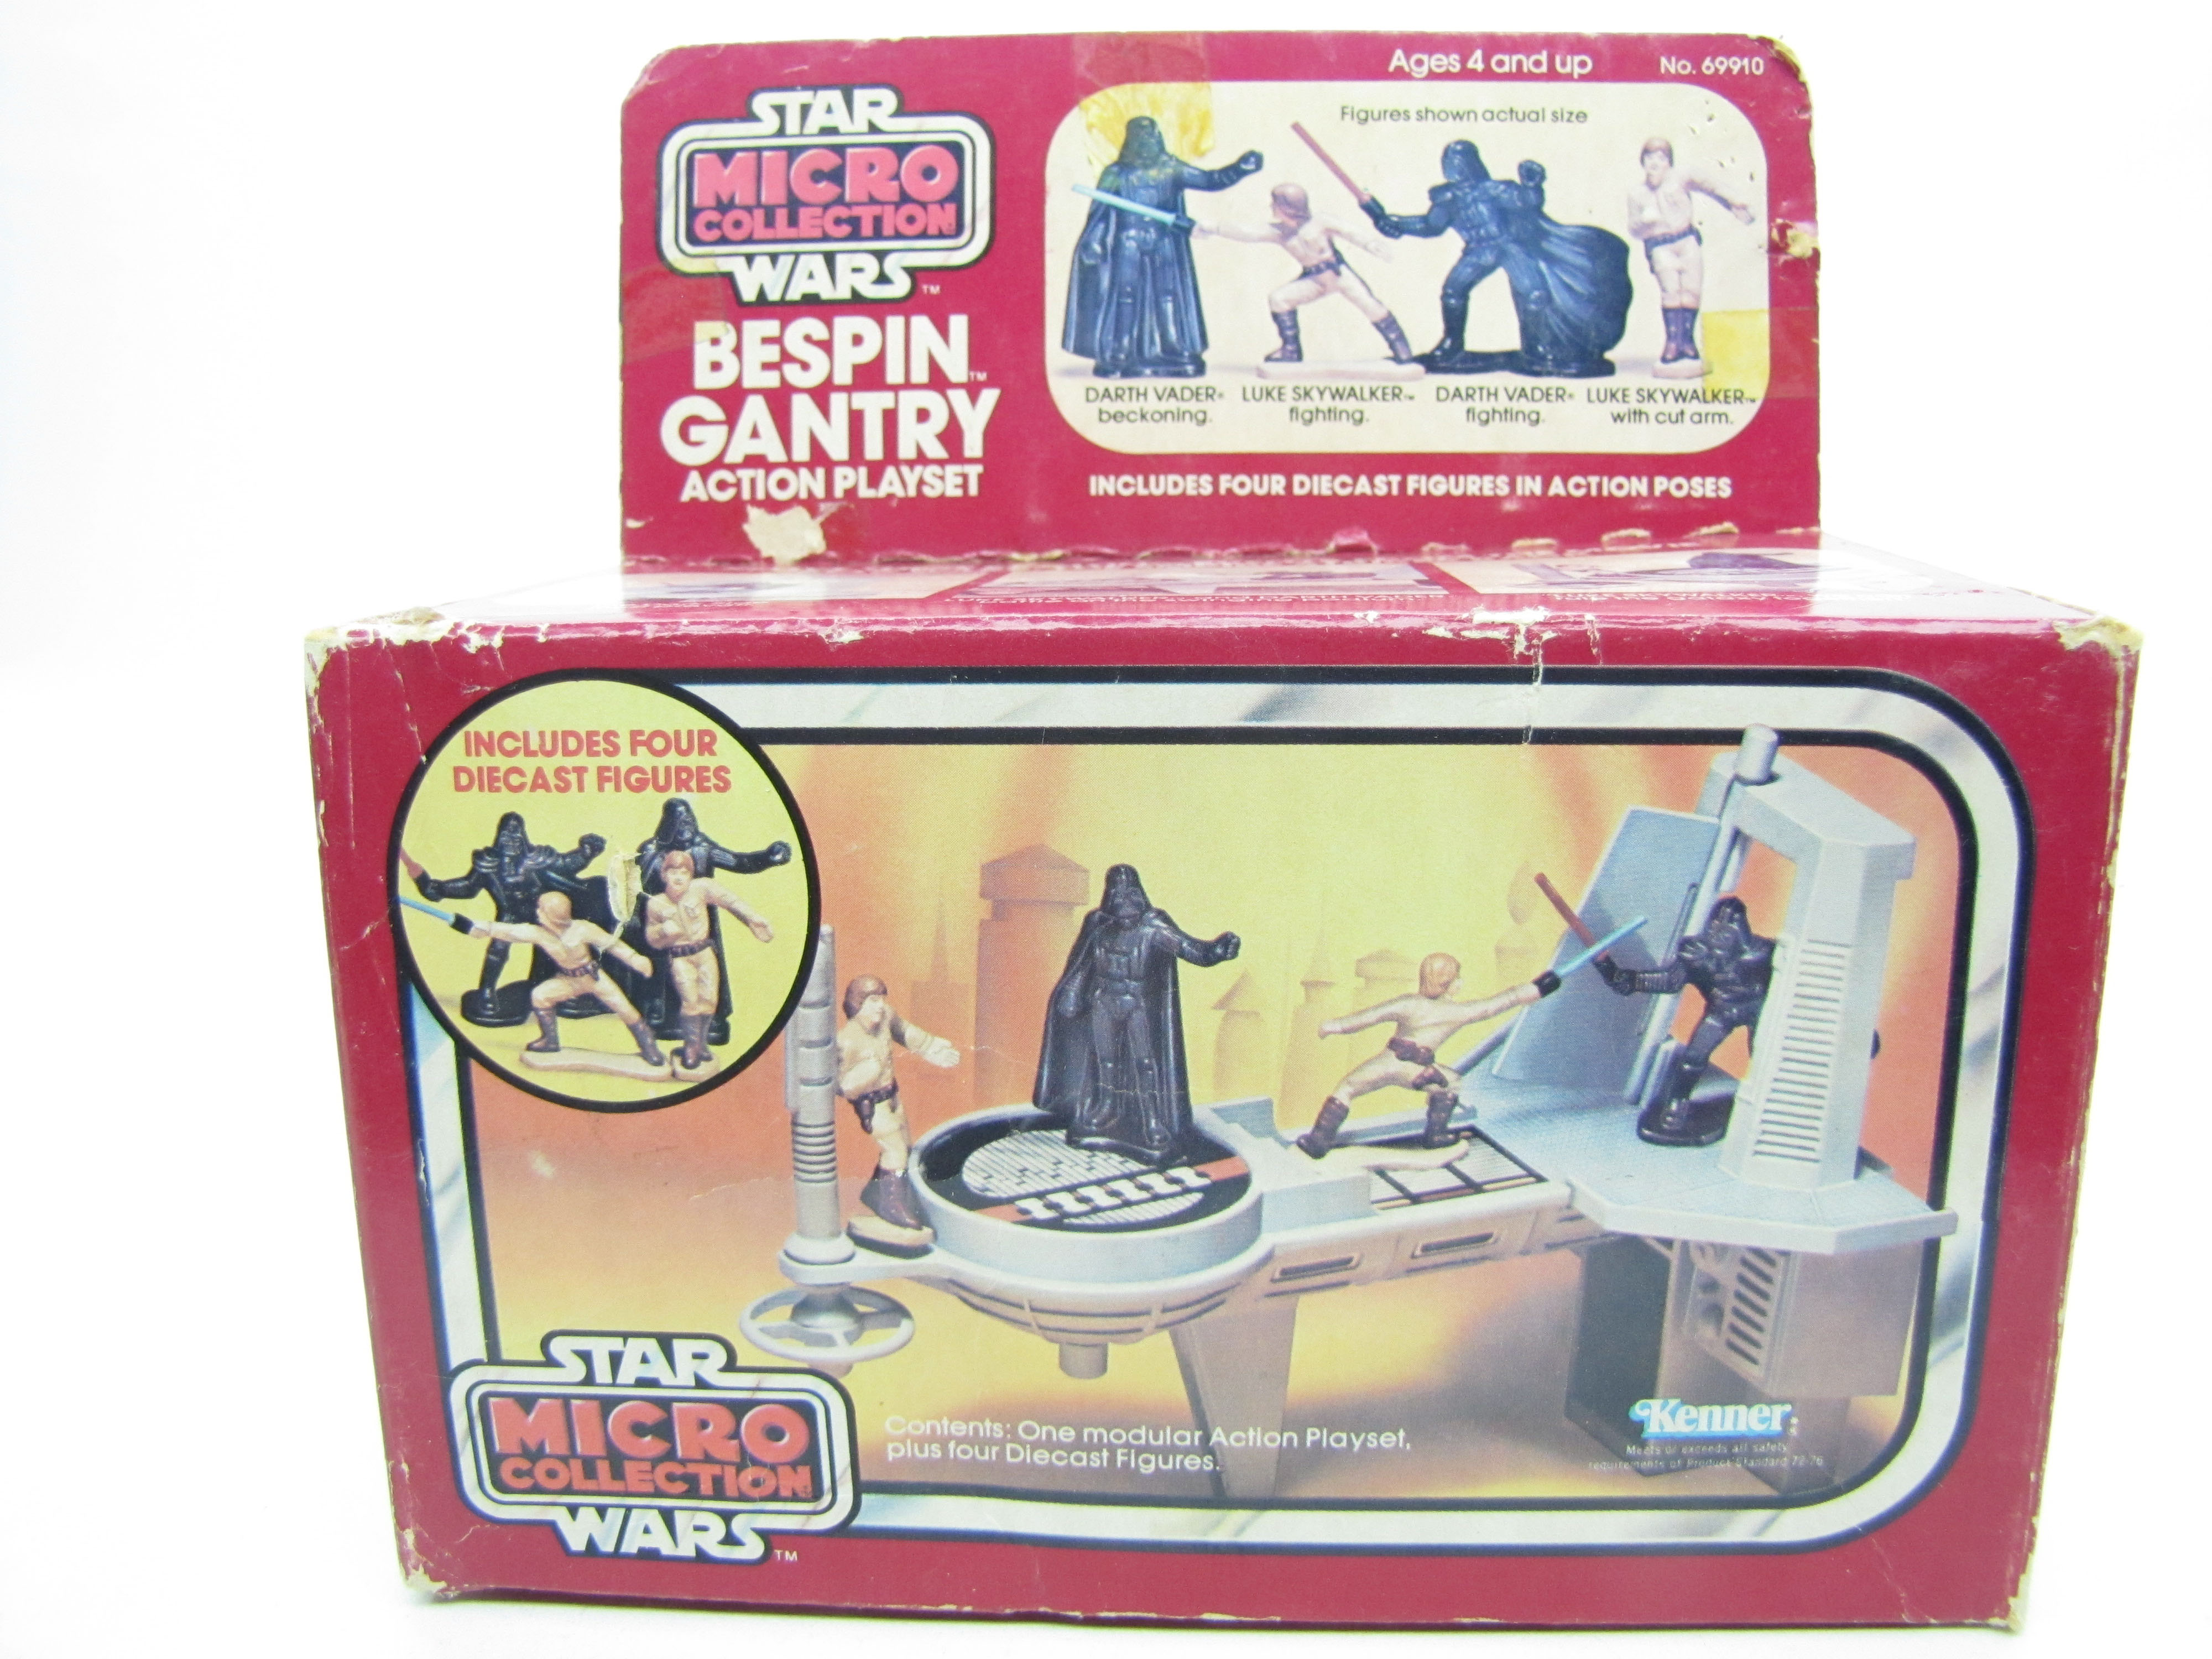 1982 Star Wars Micro Collection BESPIN GANTRY Sealed Mint in Box